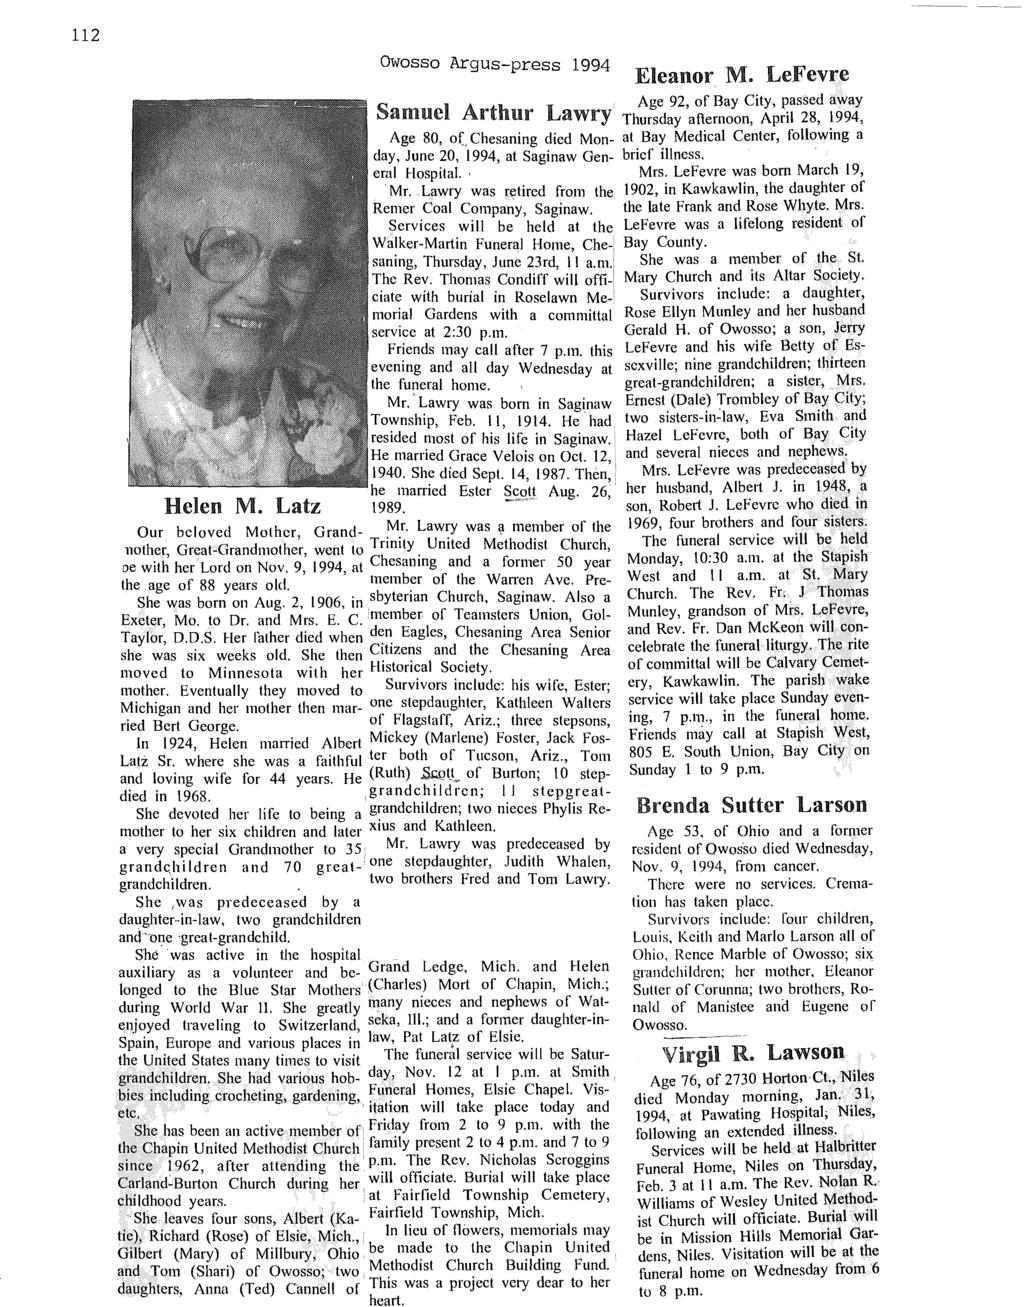 112 Owosso Argus-press 1994 Samuel Arthur L Eleanor M.